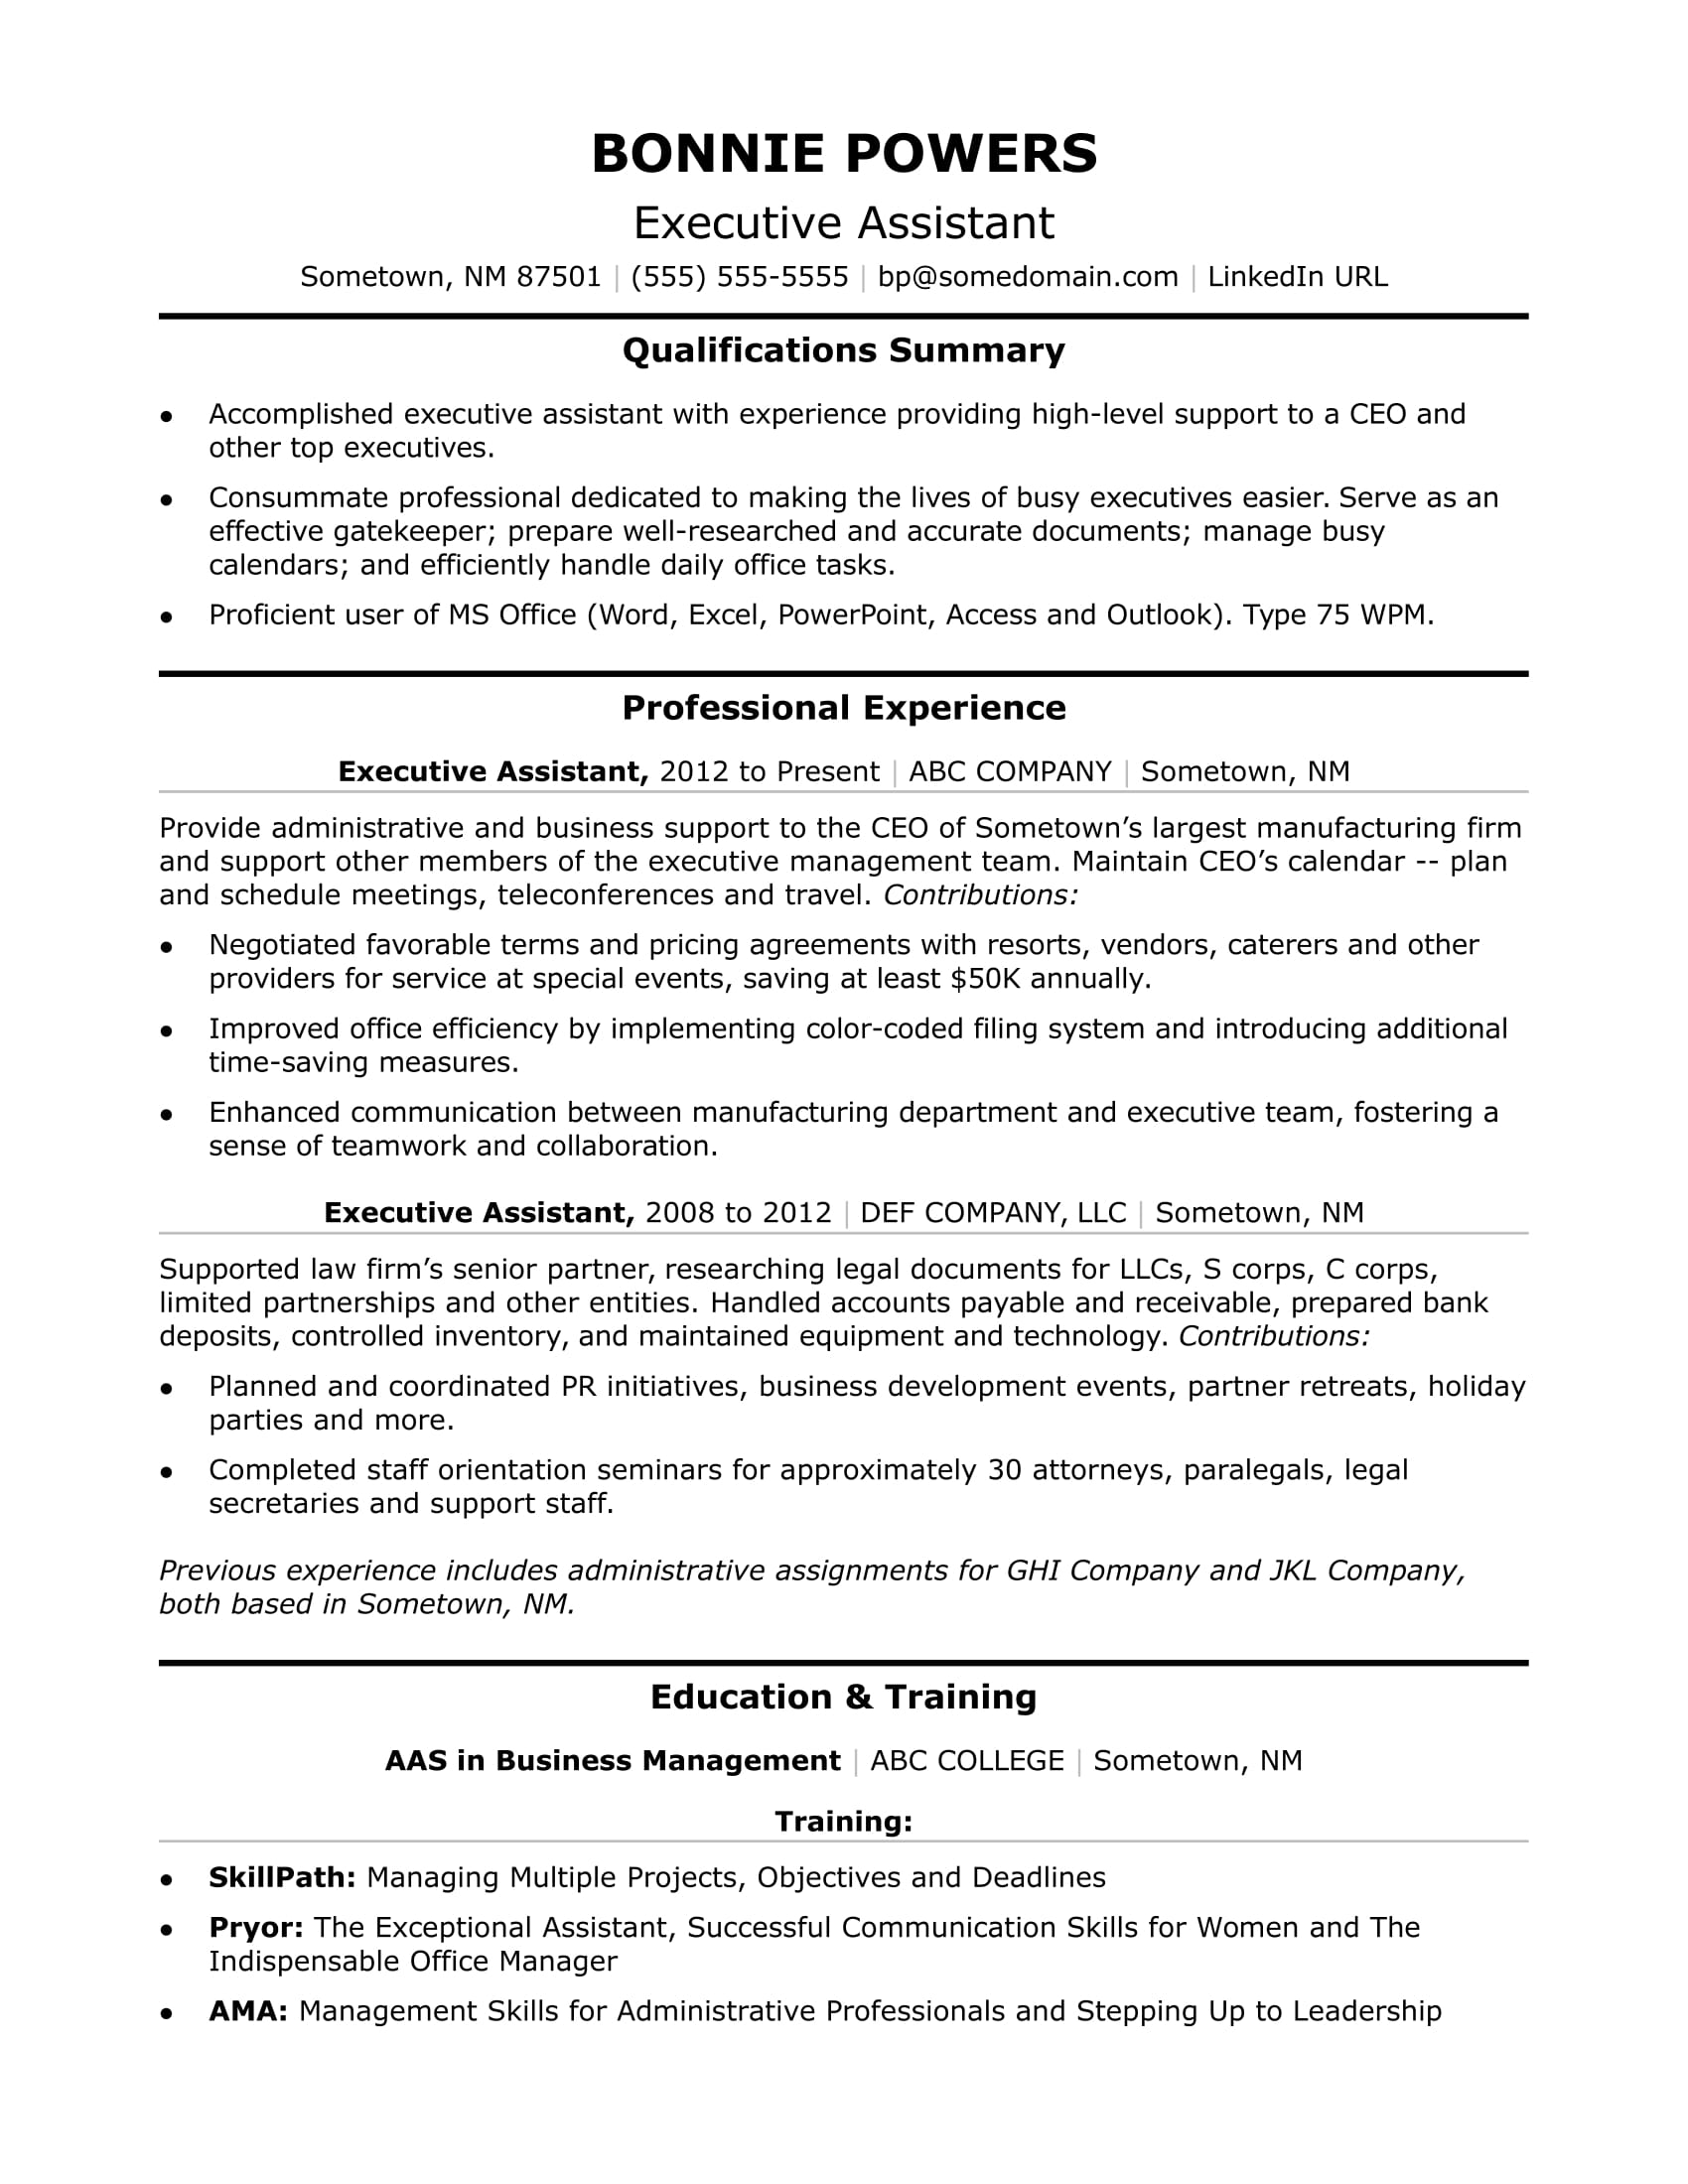 Executive Administrative Assistant Resume Sample  Skills For Administrative Assistant Resume